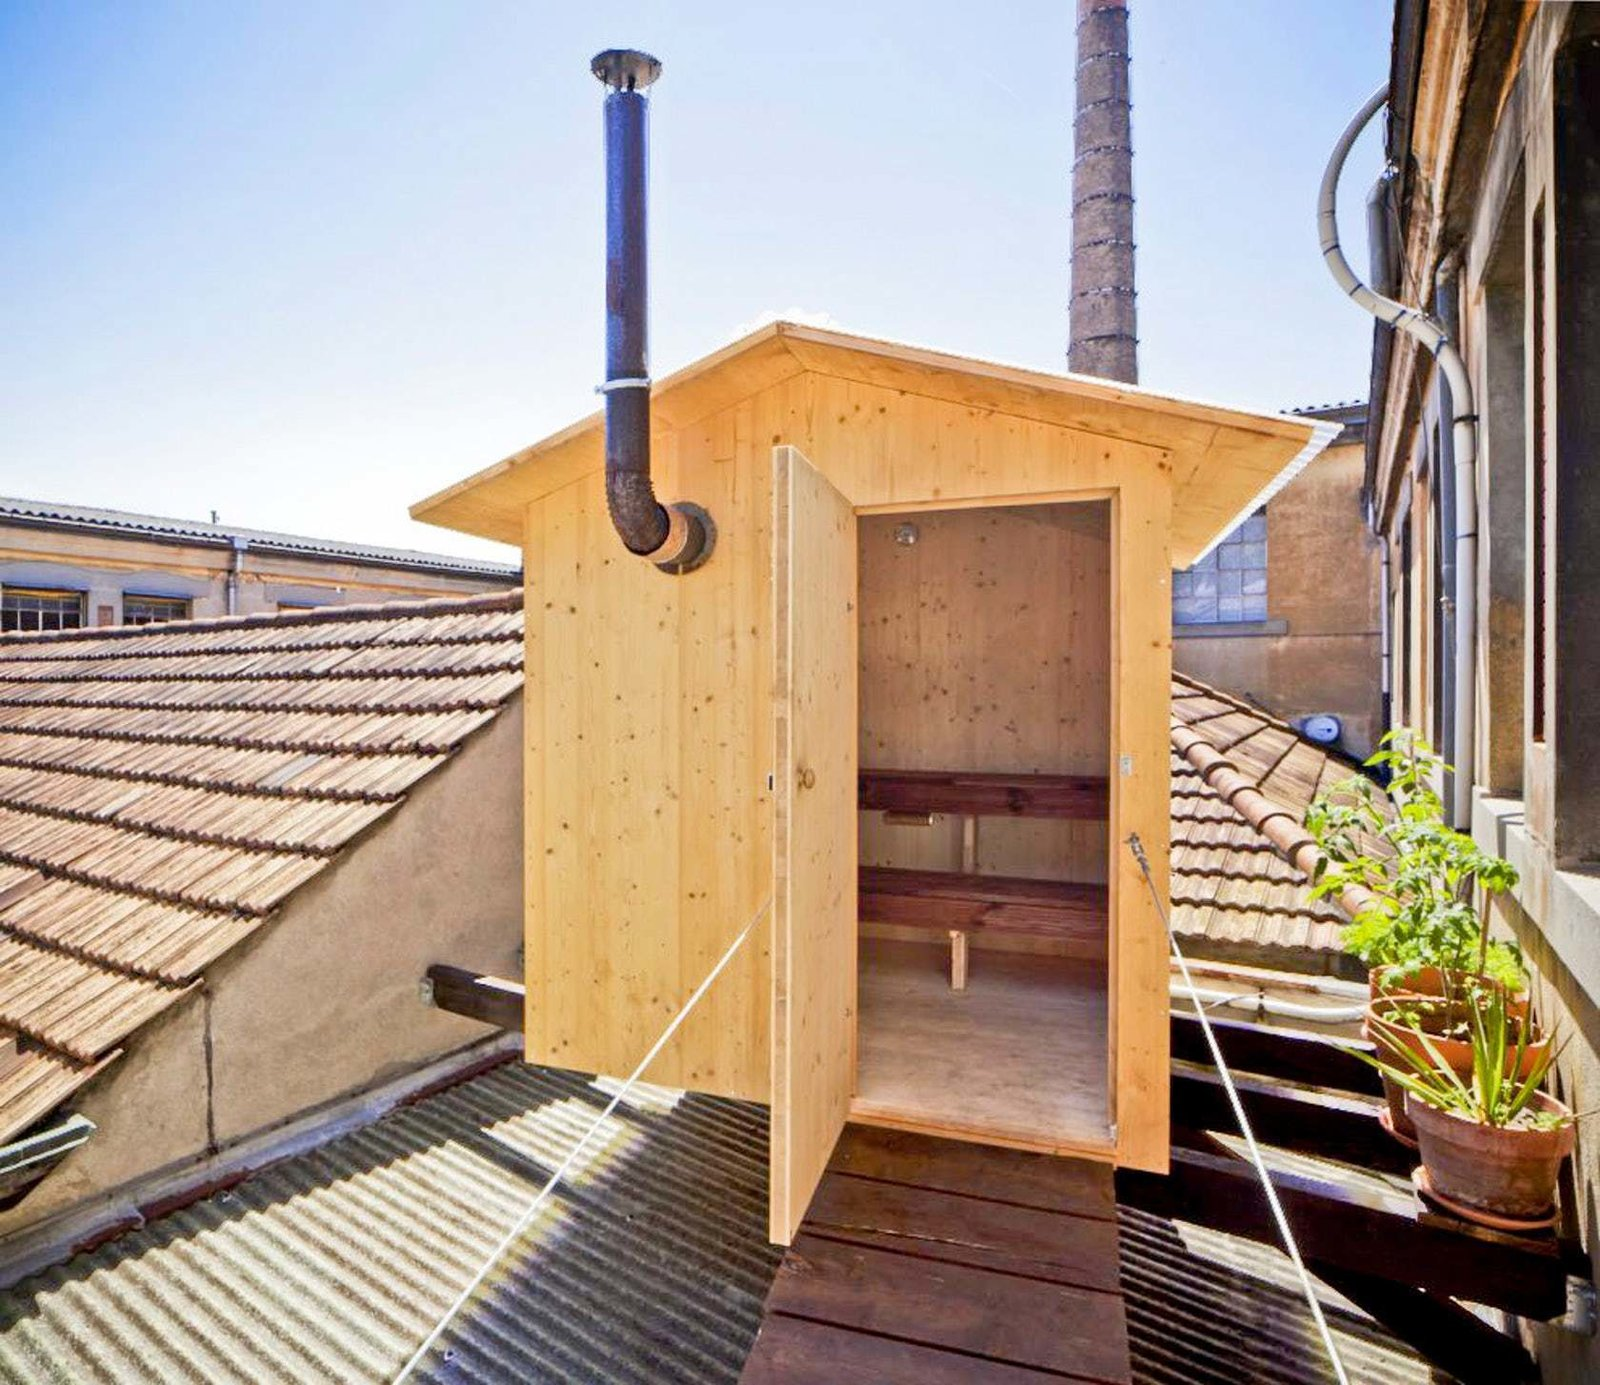 BERAU A design this sauna as a small levitating house, moored on the roof of an old factory to experiment dry heat sessions.   Photo 10 of 11 in Escape to One of These 10 Otherworldly Outdoor Saunas from Saunas